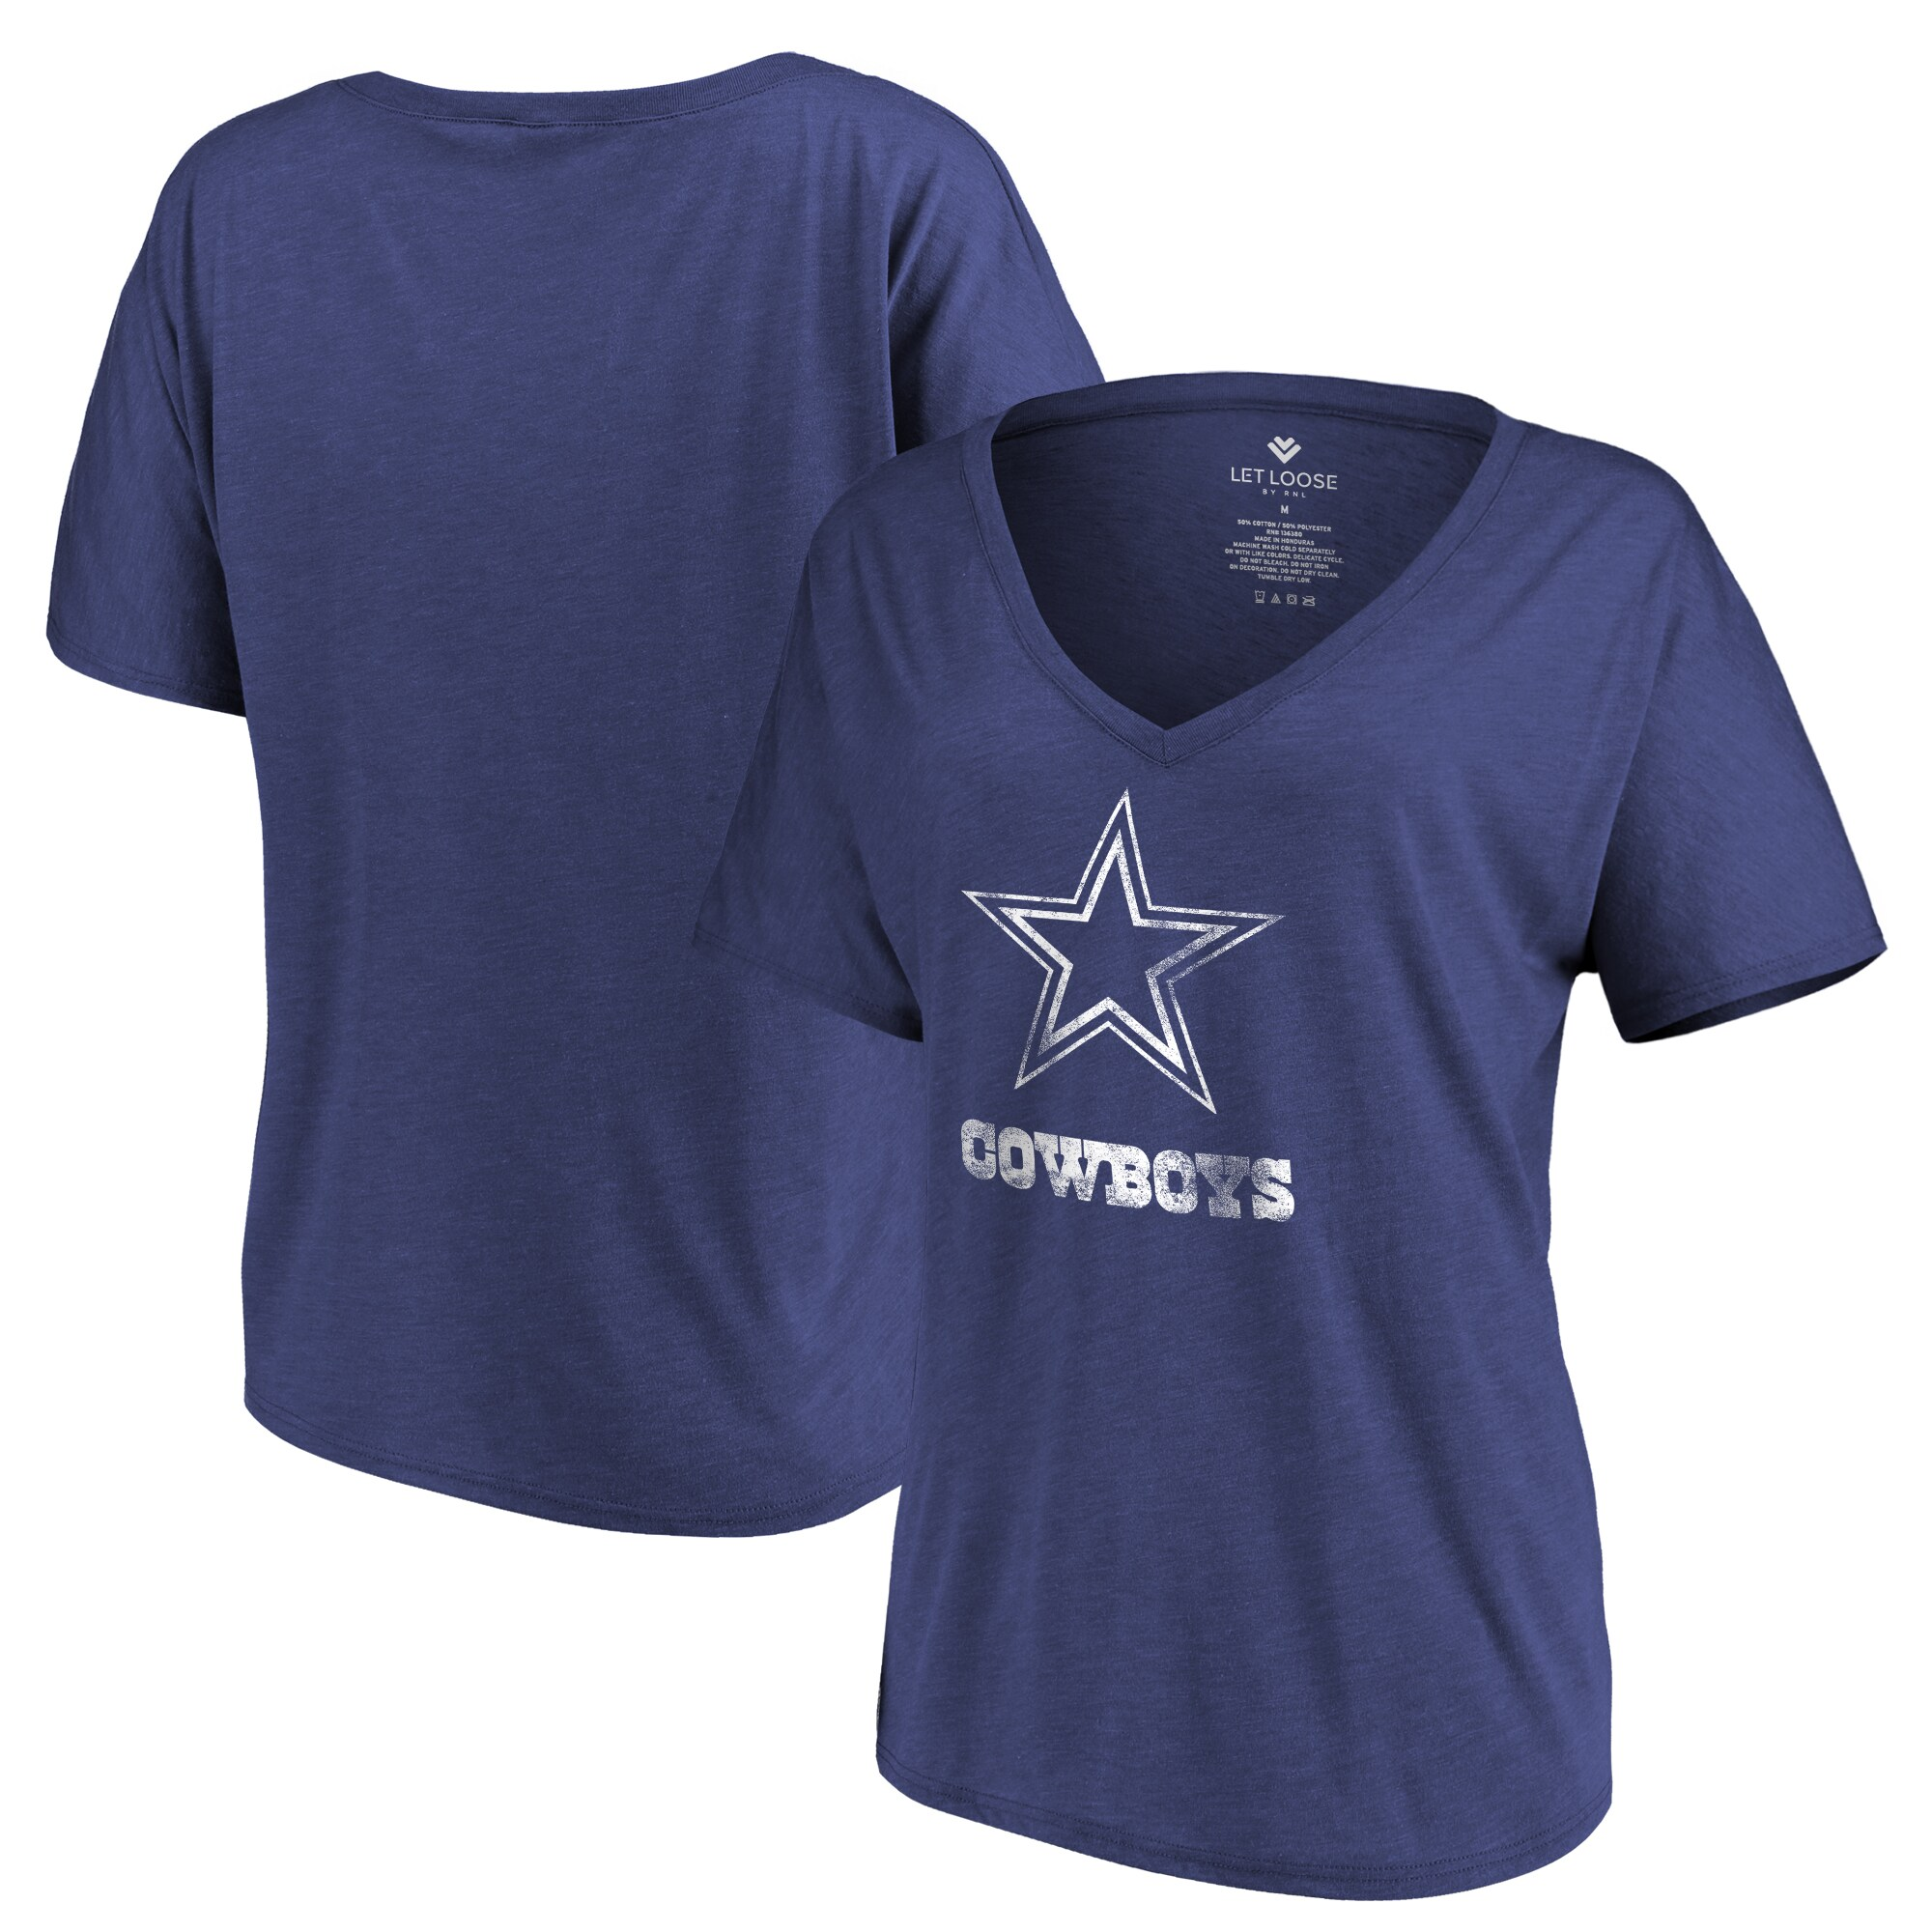 Dallas Cowboys Let Loose by RNL Women's Distressed Primary V-Neck T-Shirt - Navy